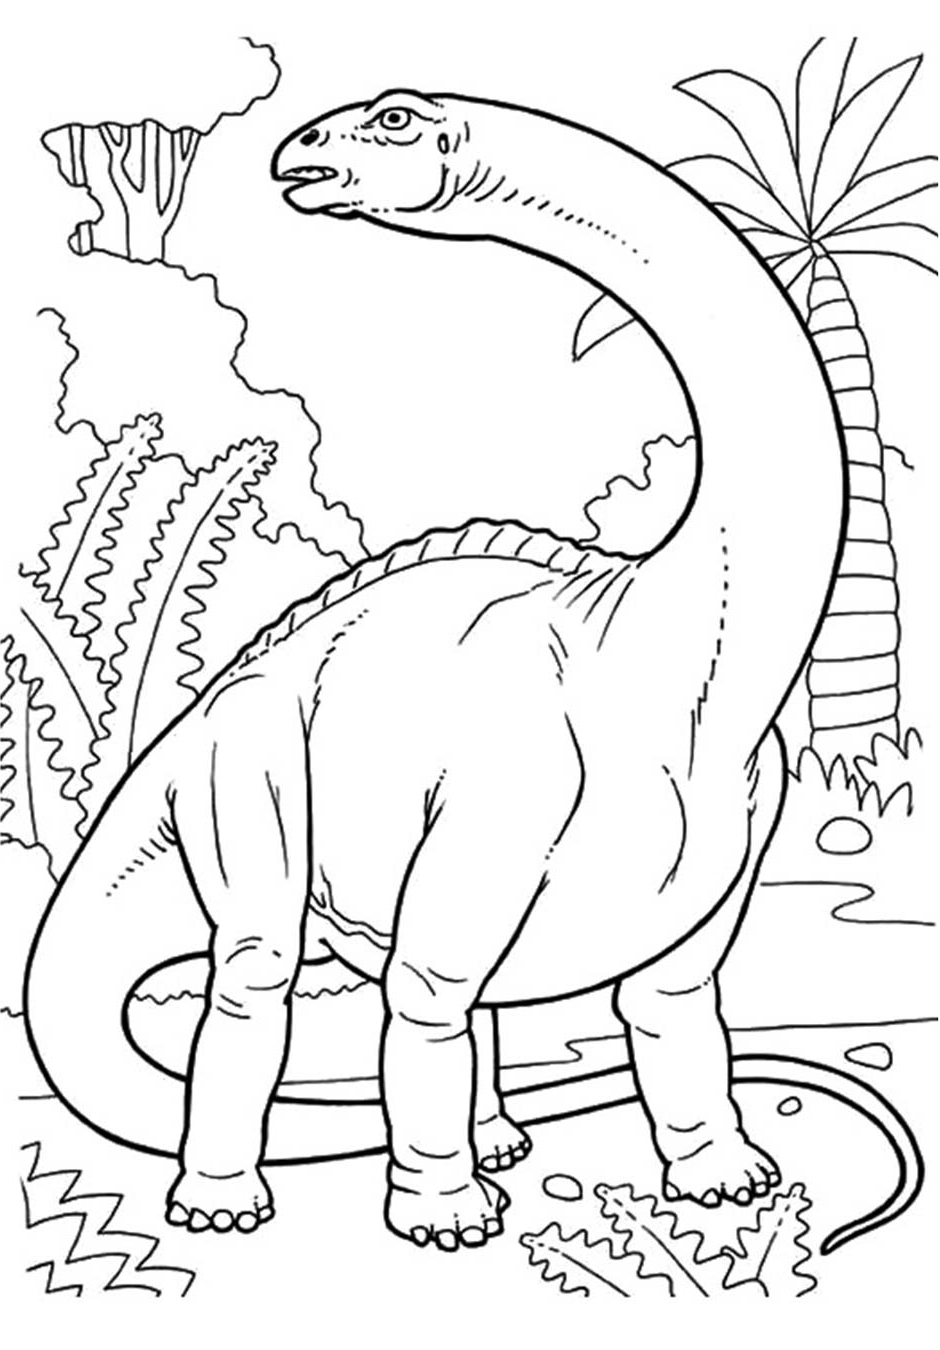 dinosaur coloring pages printable free free printable dinosaur coloring pages print color craft free coloring pages dinosaur printable